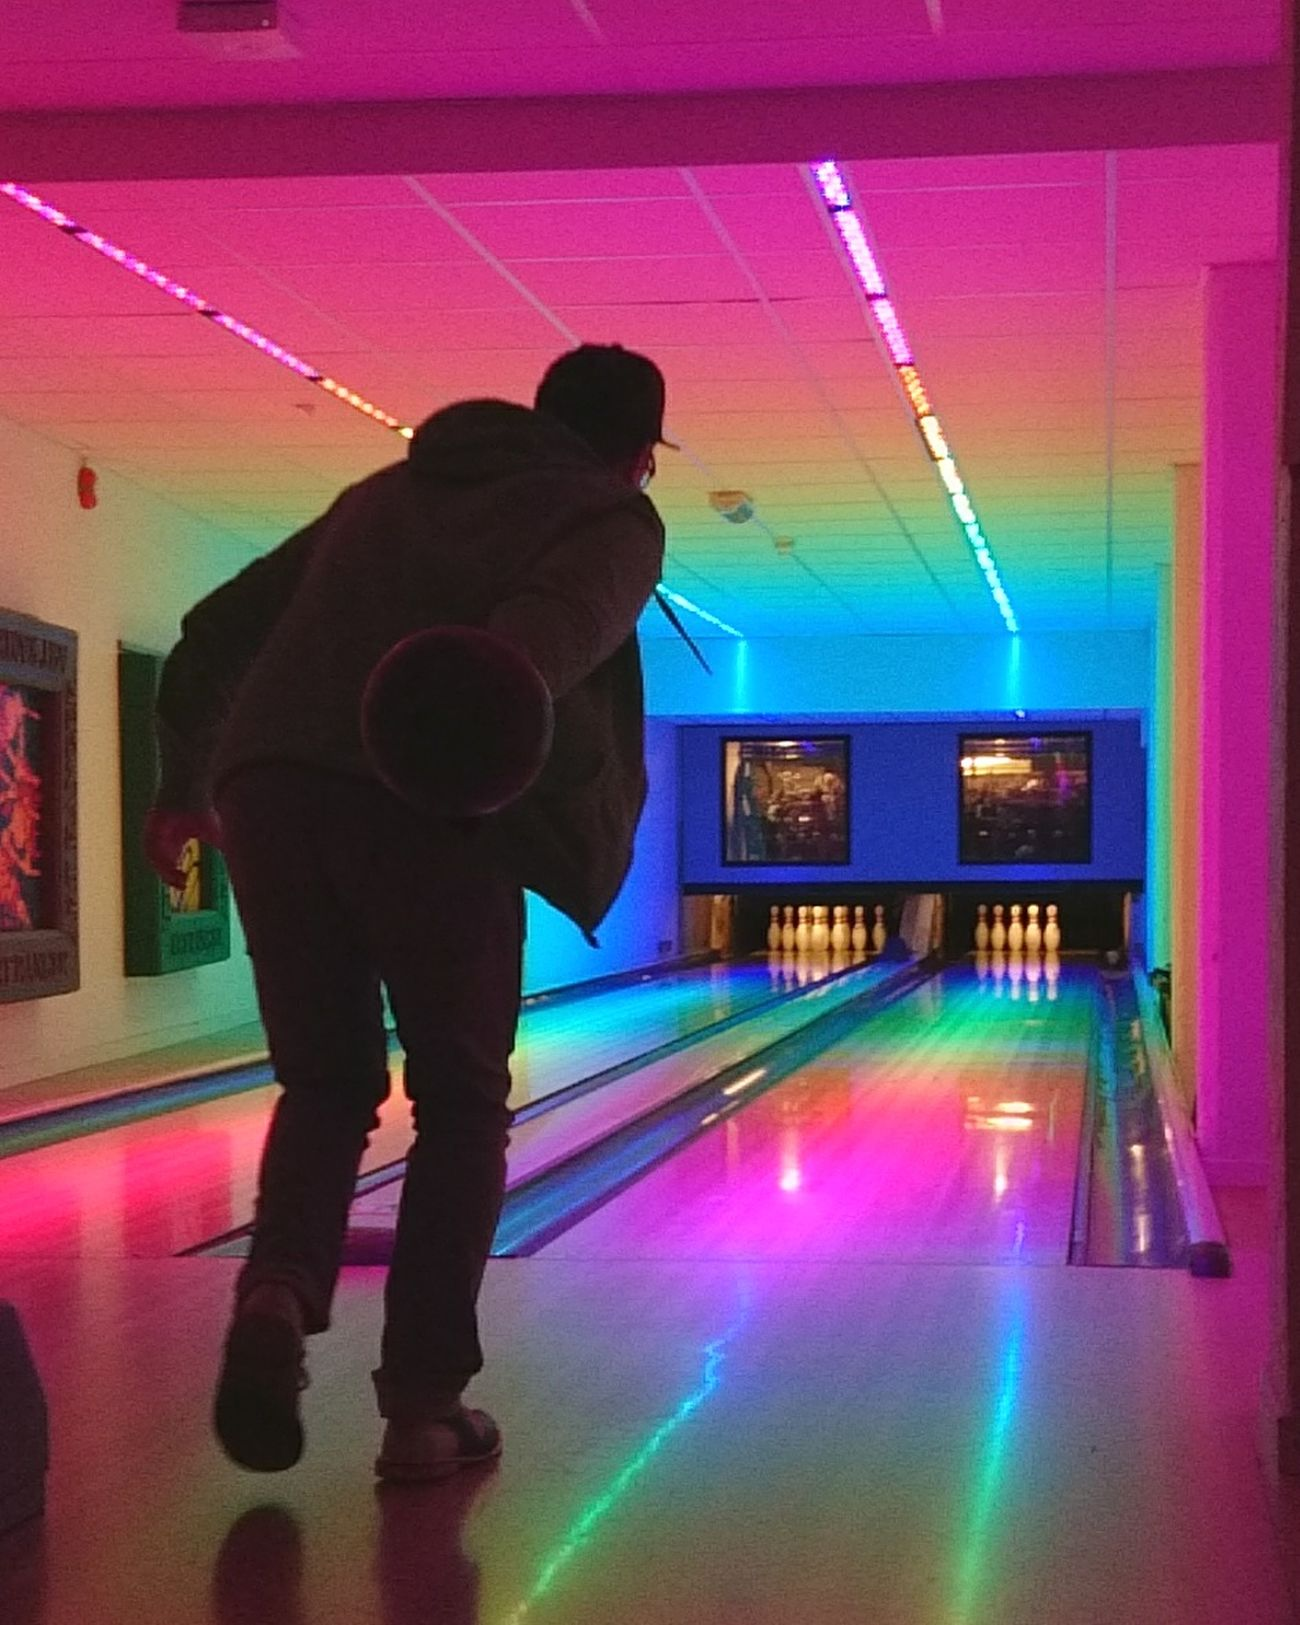 Leisure Activity Neon Performance Stage Light Enjoyment Fun Night One Person Full Length Bowling Bowling Alley Cosmic Bowling Colorful Colors Alley Ball